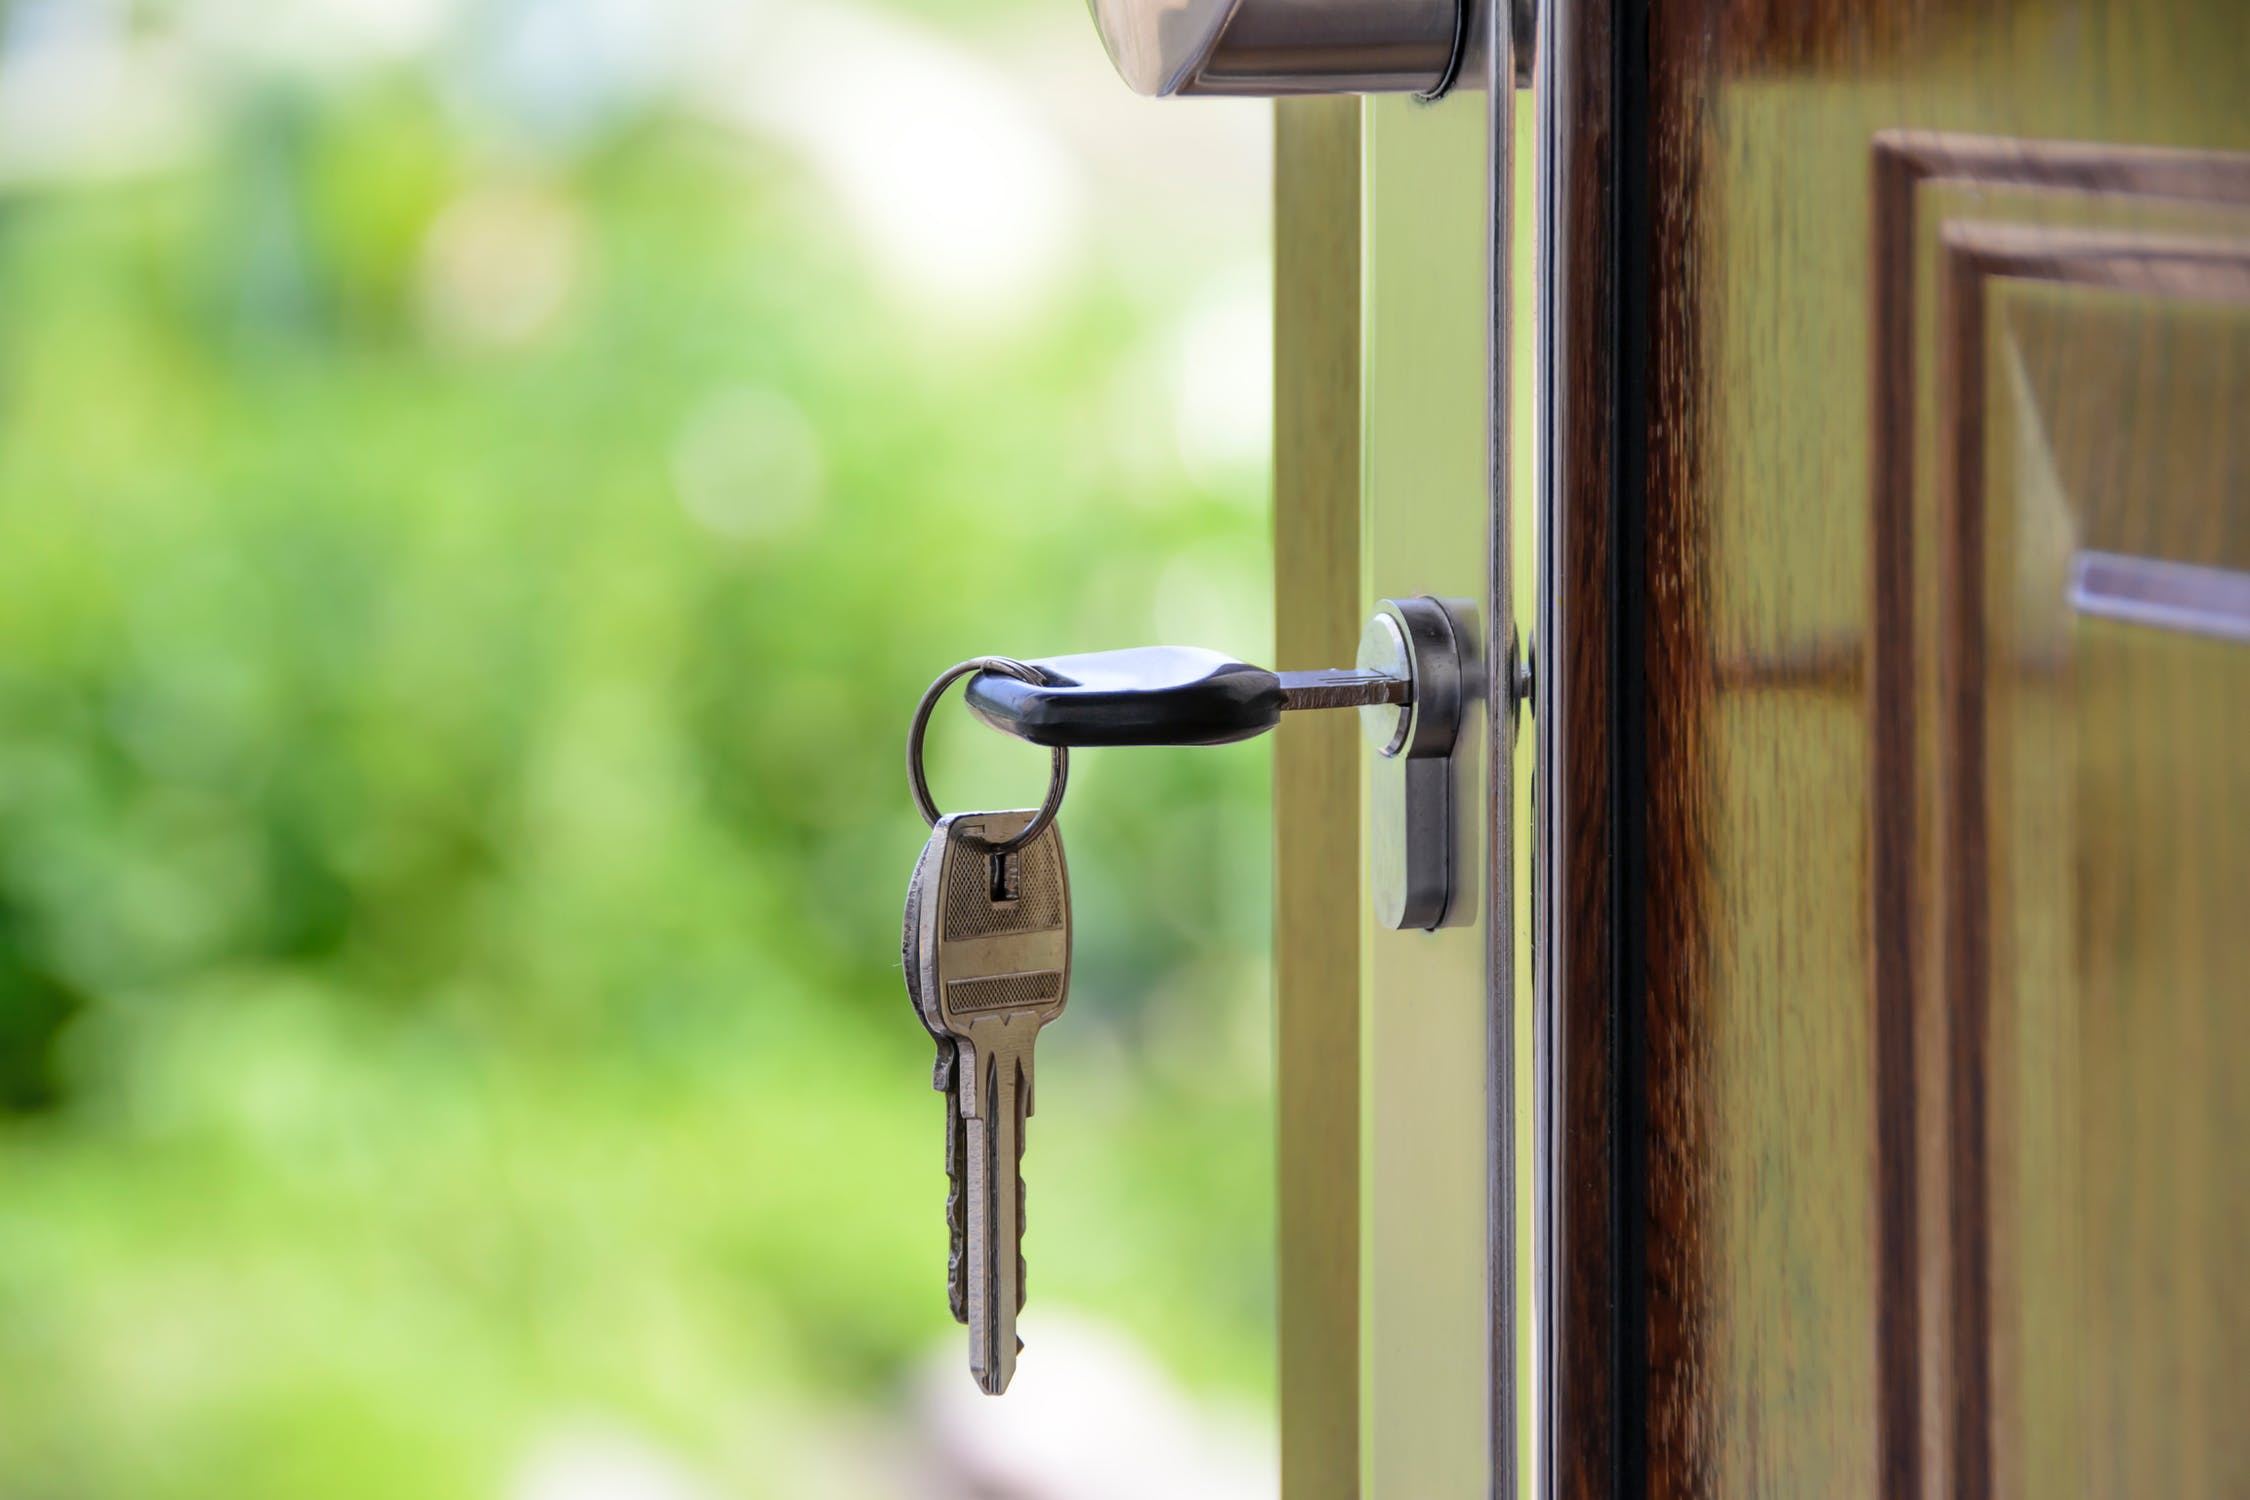 A key in the door - after buying your first home in Miami.